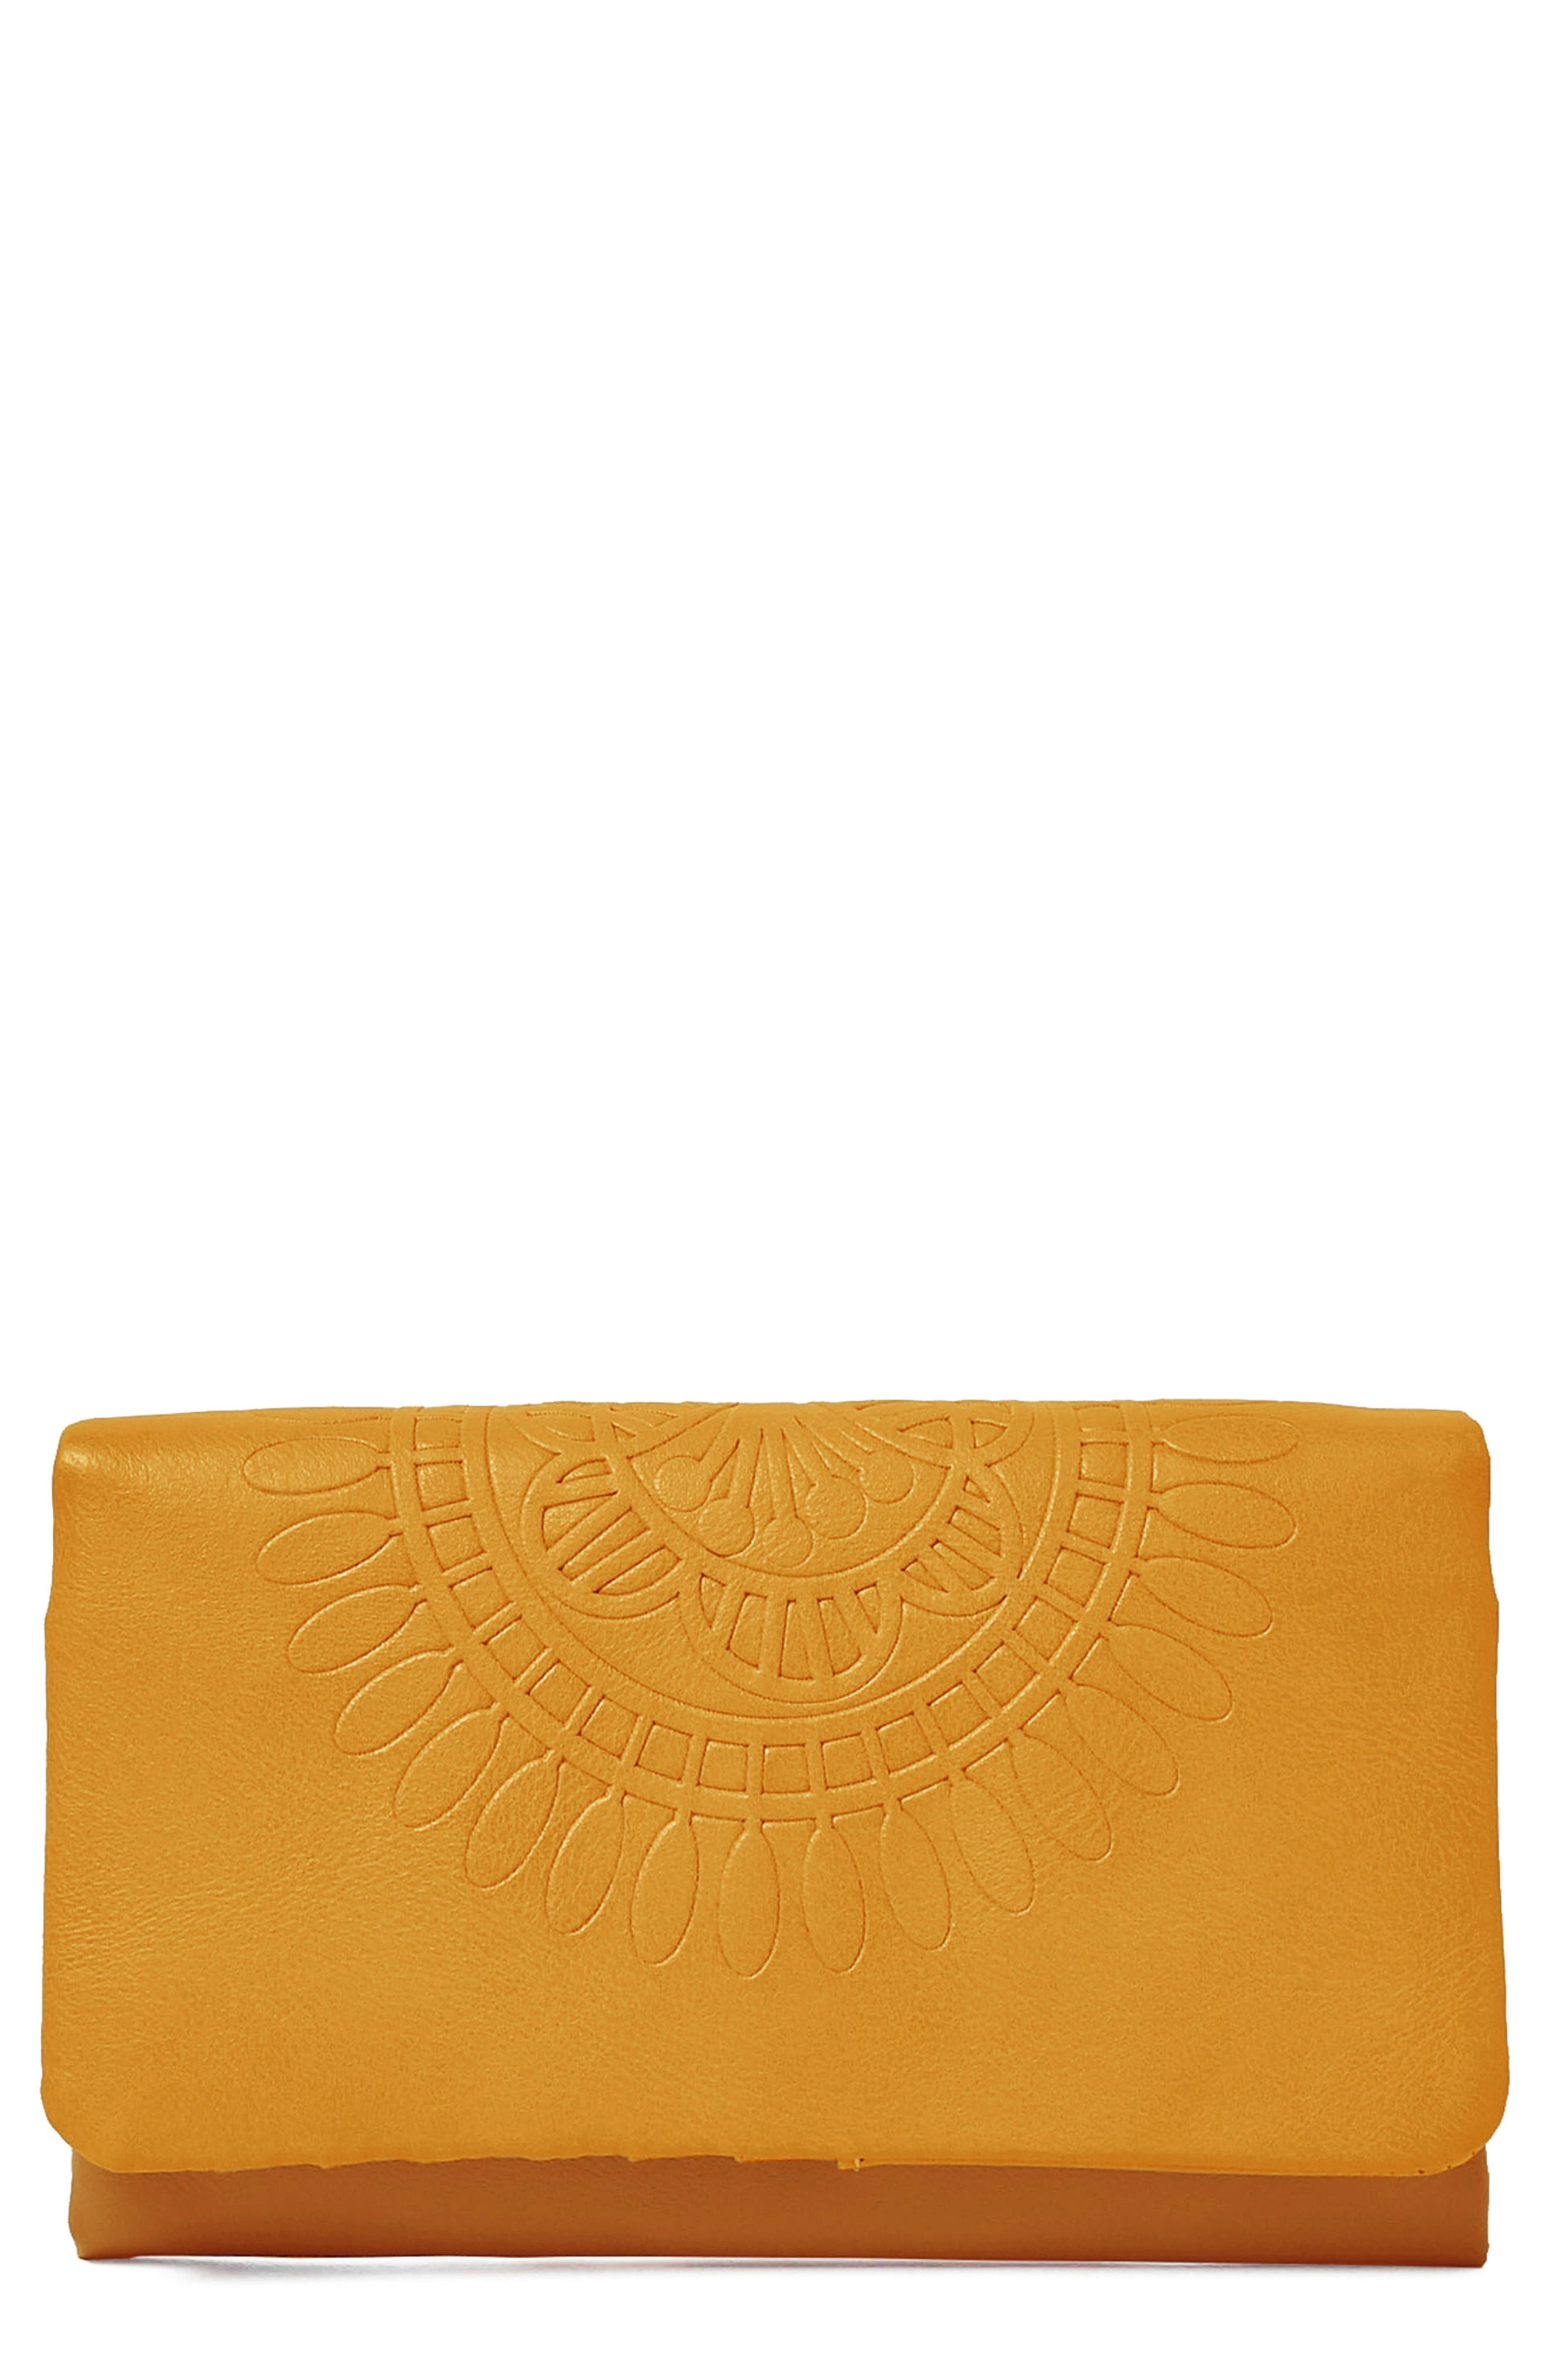 Flower Gypsy Vegan Leather Wallet,                         Main,                         color, Mustard